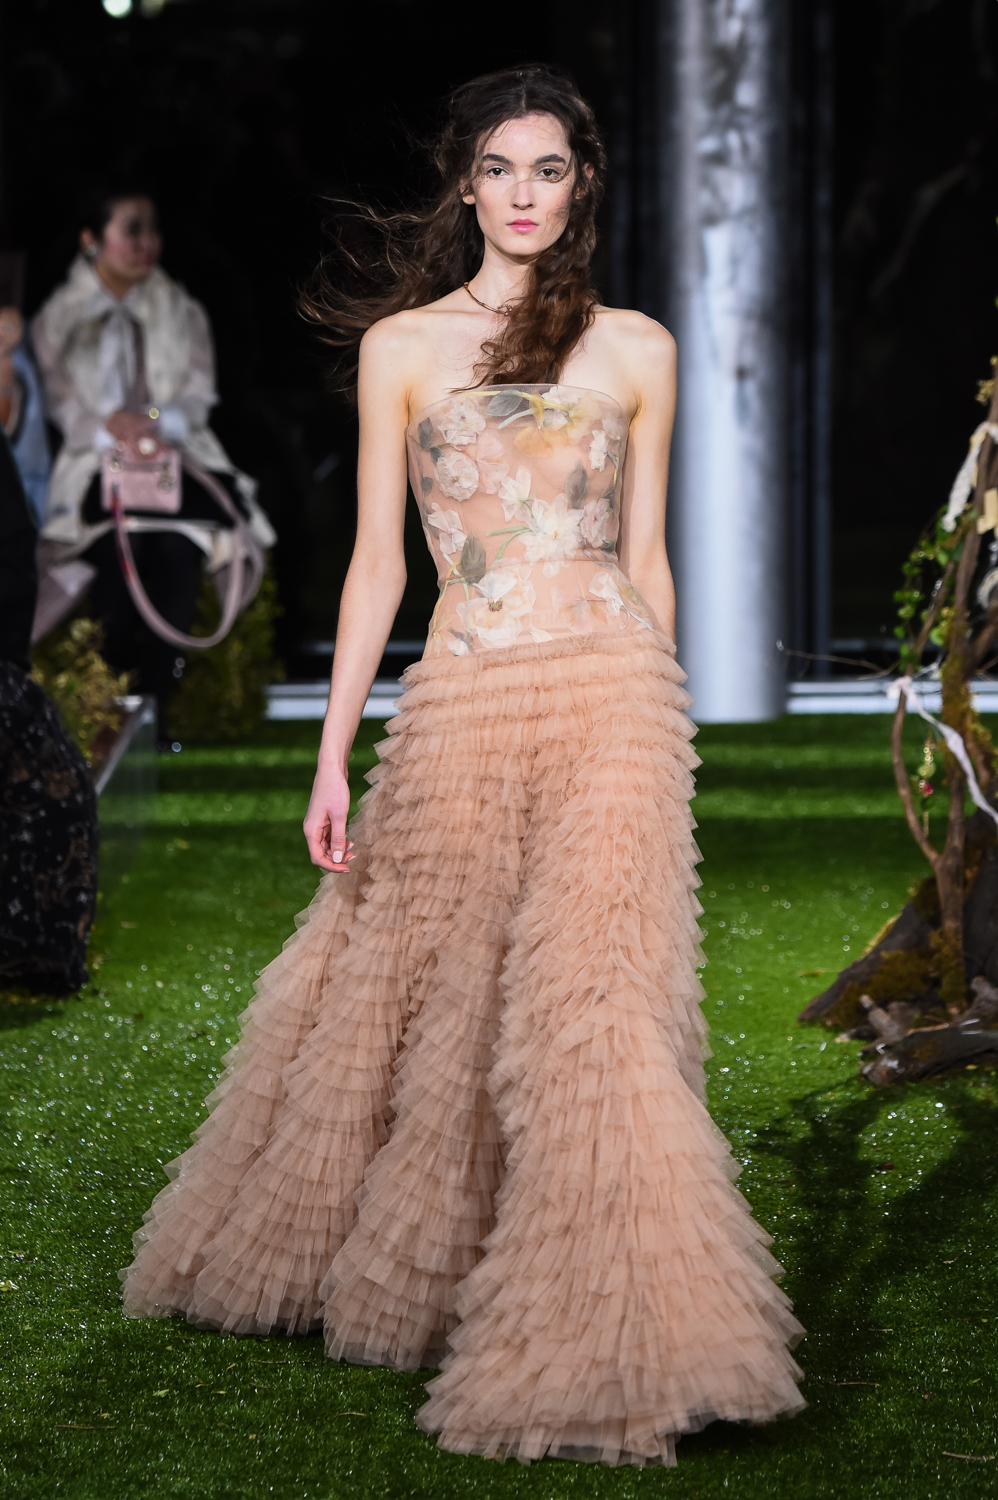 "<p>When Dior opens a five floor boutique in Tokyo's Ginza district you know that Japan is still at the heart of luxury.</p> <p> Creative director Maria Grazia Chiuri took her first haute couture collection to the land of cherry blossom, vending machines and more designer brands than the Champs Elysee.</p> <p> While other luxury brands have been focussing on China, Dior still sees the potential for full coffers from Japan.</p> <p> ""What we want to do in Japan is look for the local market. We look for the Japanese customers,"" who have long been ""super customers for luxury and high fashion,"" chief executive Sidney Toledano told Reuters.</p> <p> For the collection, Chiuri added some new pieces that drew inspiration from Japan. Cue the cherry blossom motifs. Chiuri is many things but her most recent all-blue ready-to-wear show demonstrated that subtlety is of little interest.</p>"